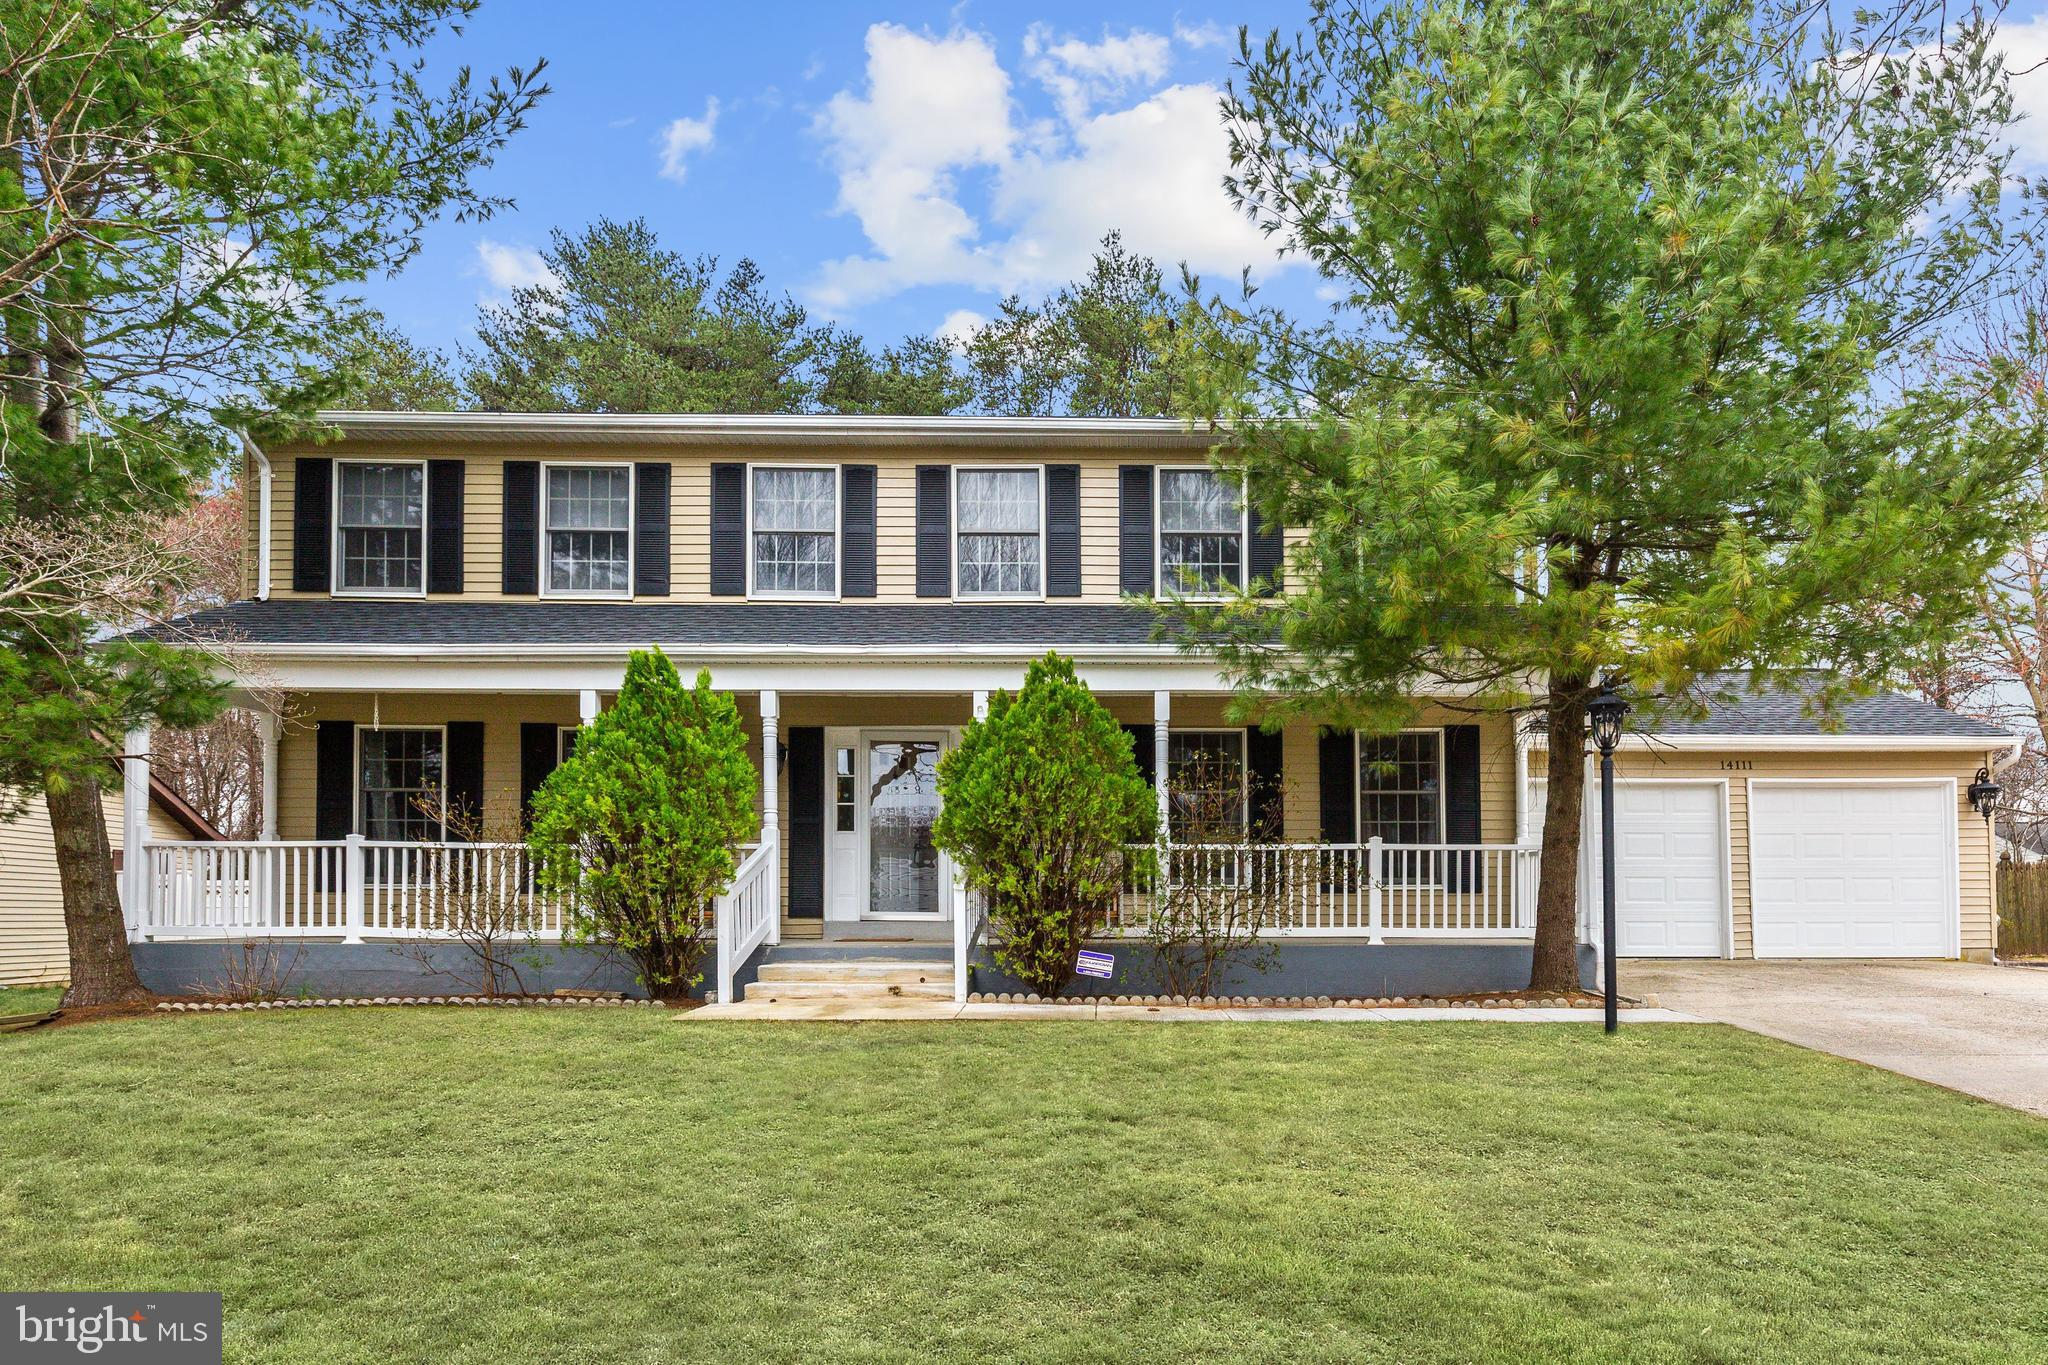 14111 WAINWRIGHT COURT, BOWIE, MD 20715